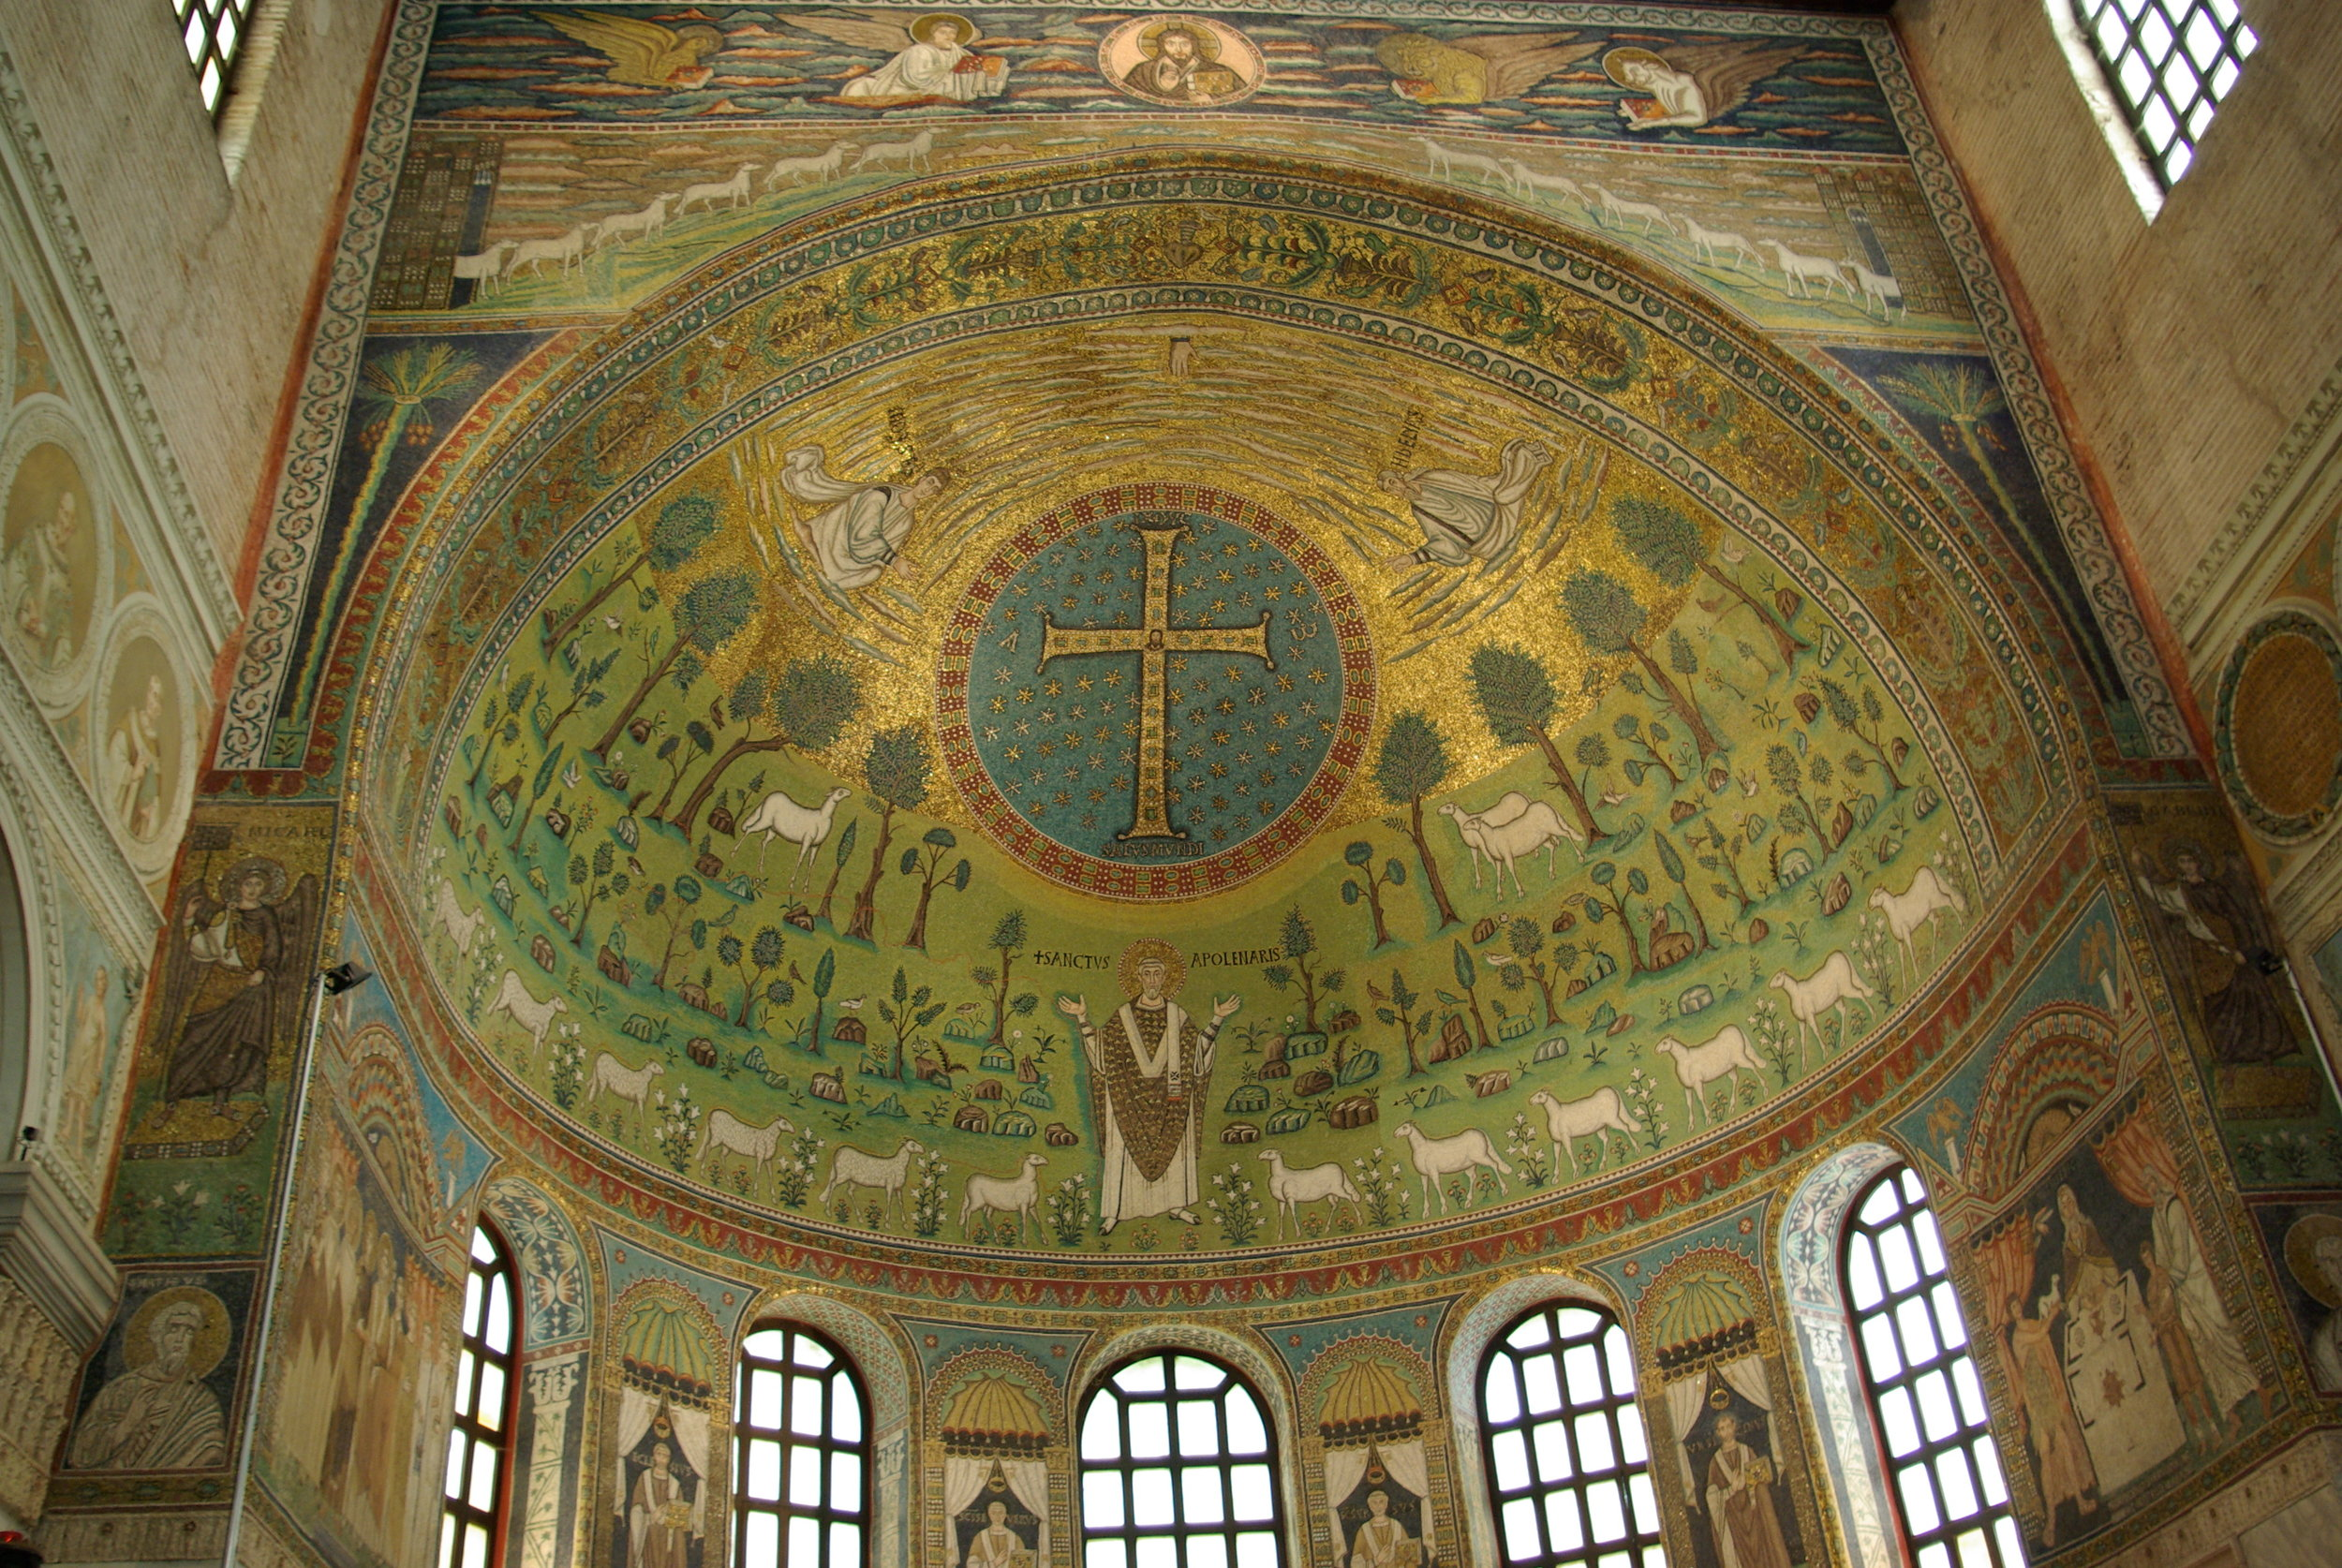 The apse of the Basilica of SantApollinare in Classe, near Ravenna, is decorated with a famous and imaginative depiction of the transfiguration. Image in the public domain, taken from Wikipedia.